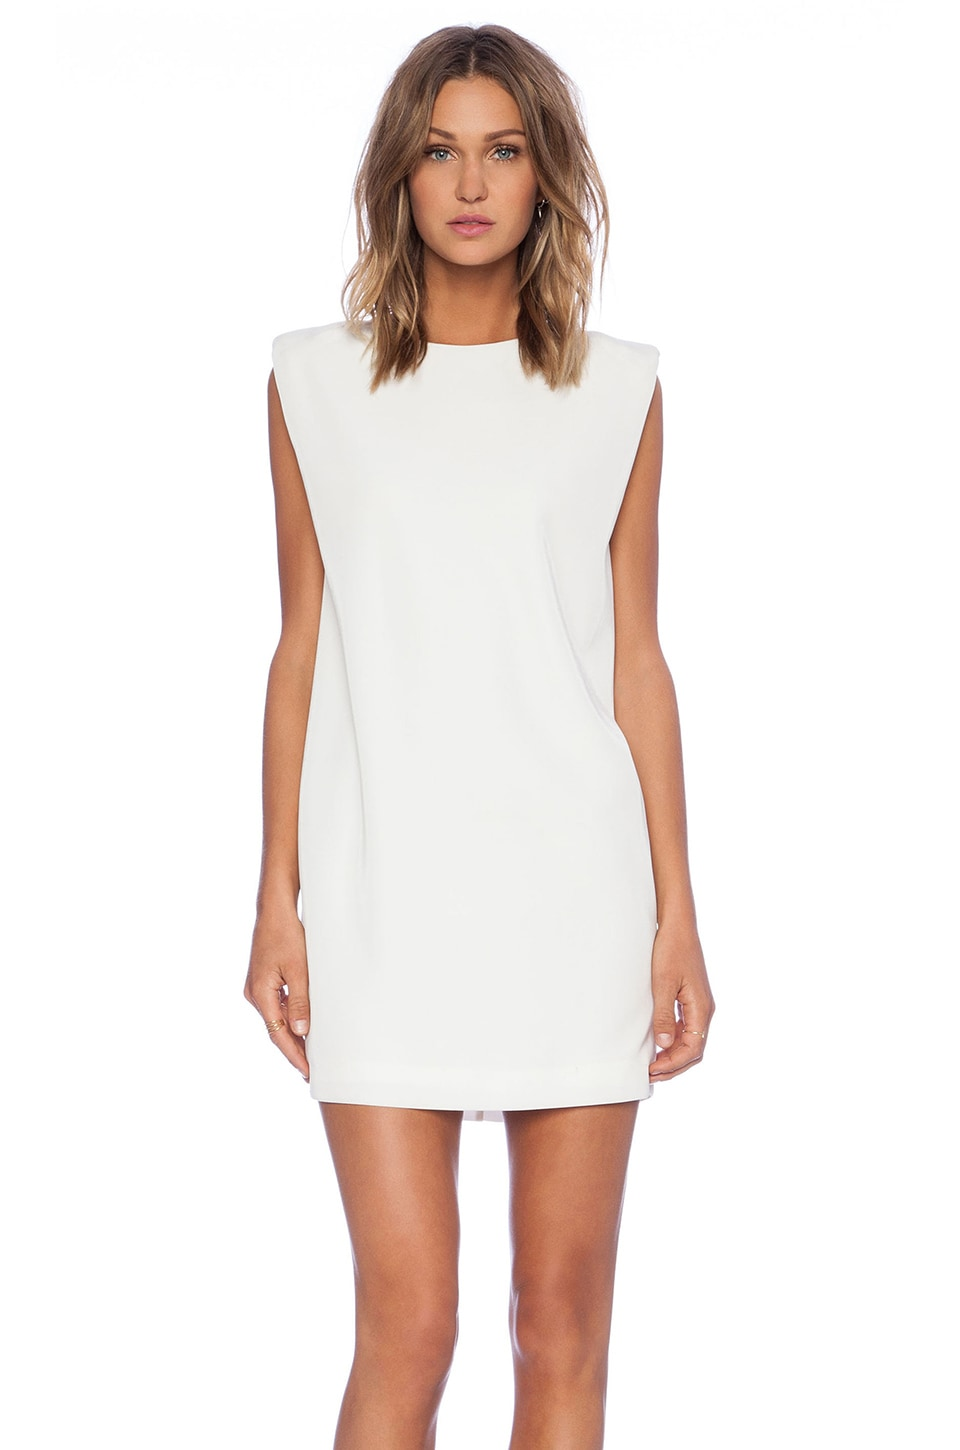 State of Being Oak Dress in White